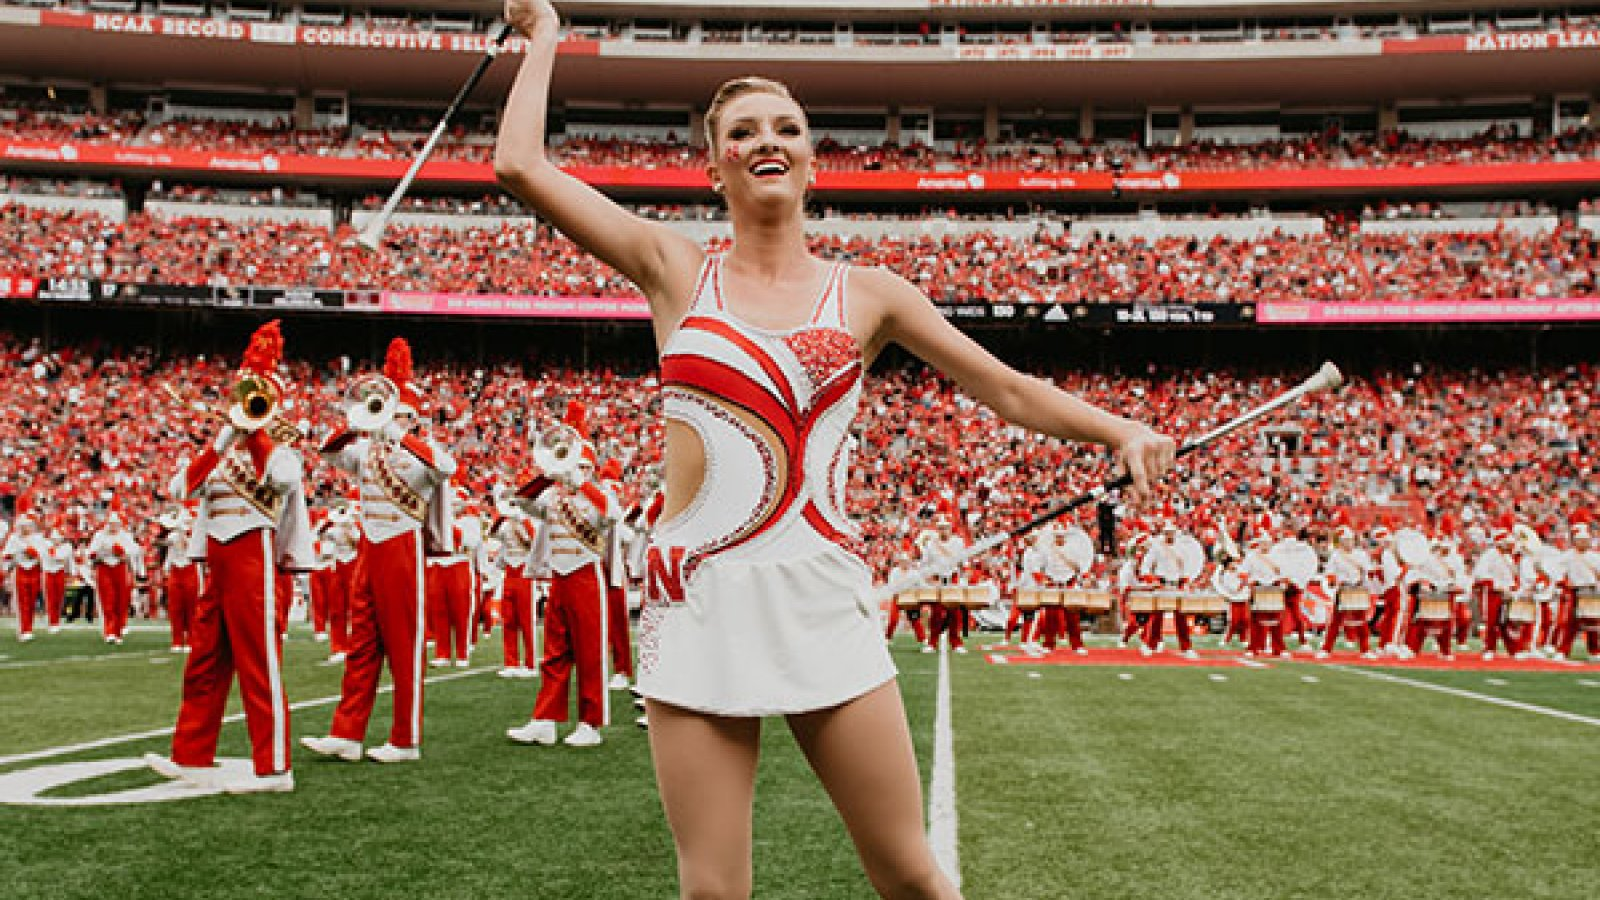 Kimberly Law, a freshman in chemical engineering from La Quinta, California, is one of two featured twirlers in the Cornhusker Marching Band. (Photo by Justin Mohling)